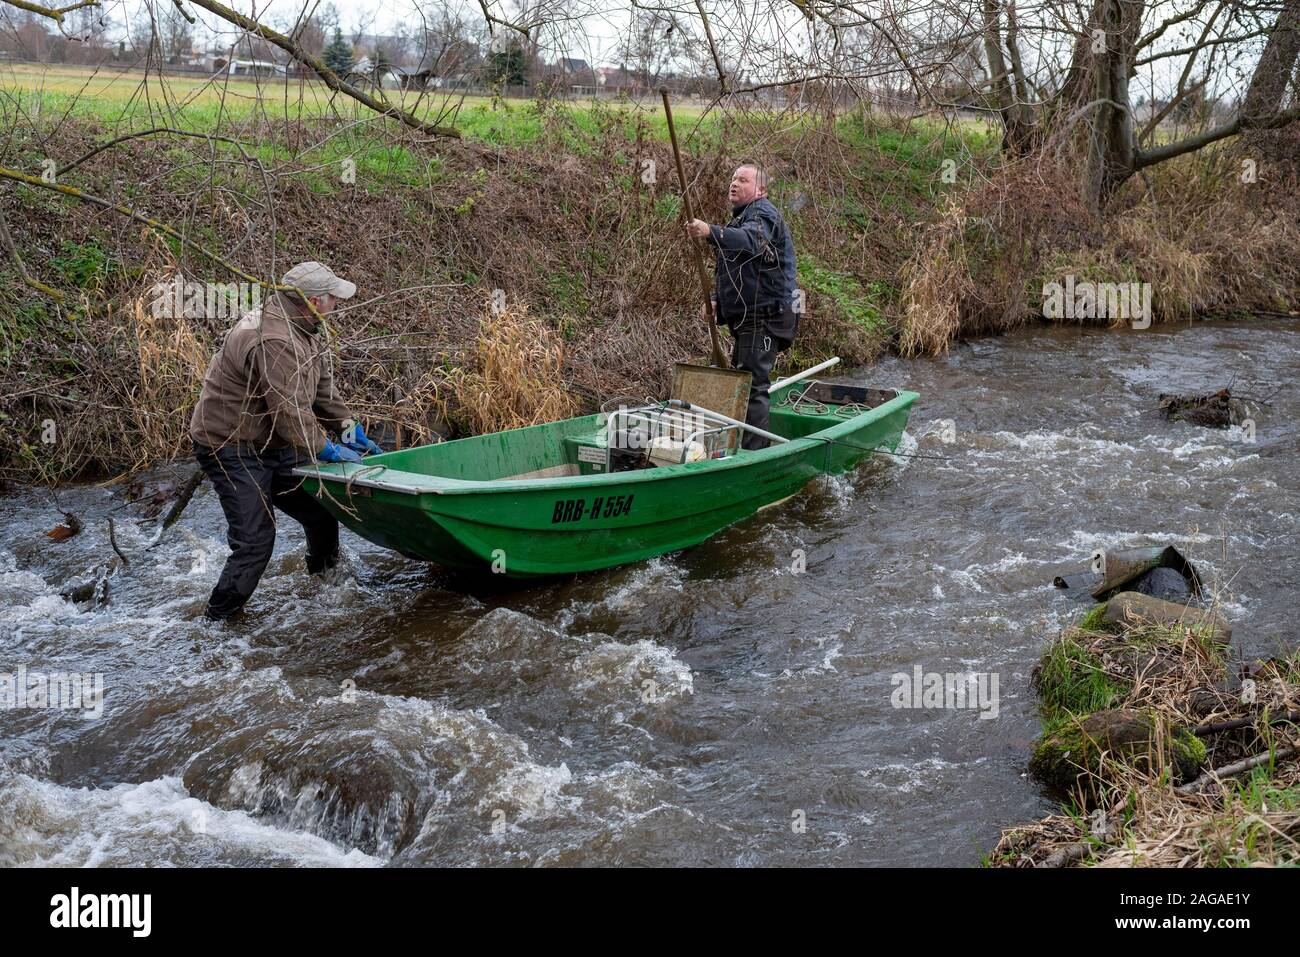 Zerbst, Saxony-Anhalt, Germany. 18th Dec 2019. Jens Winterheuser (l) and Robert Wolf from the Institute for Inland Fisheries Potsdam-Sacrow search for spawning salmon with an electric fishing gear. A total of 143,500 young salmon and 90,300 sea trout hatchlings have been released into the Nuthe near Zerbst in the past ten years. The fish migrate to the Atlantic and return to spawn in the Nuthe after a few years. Credit: Mattis Kaminer/Alamy Live News Stock Photo